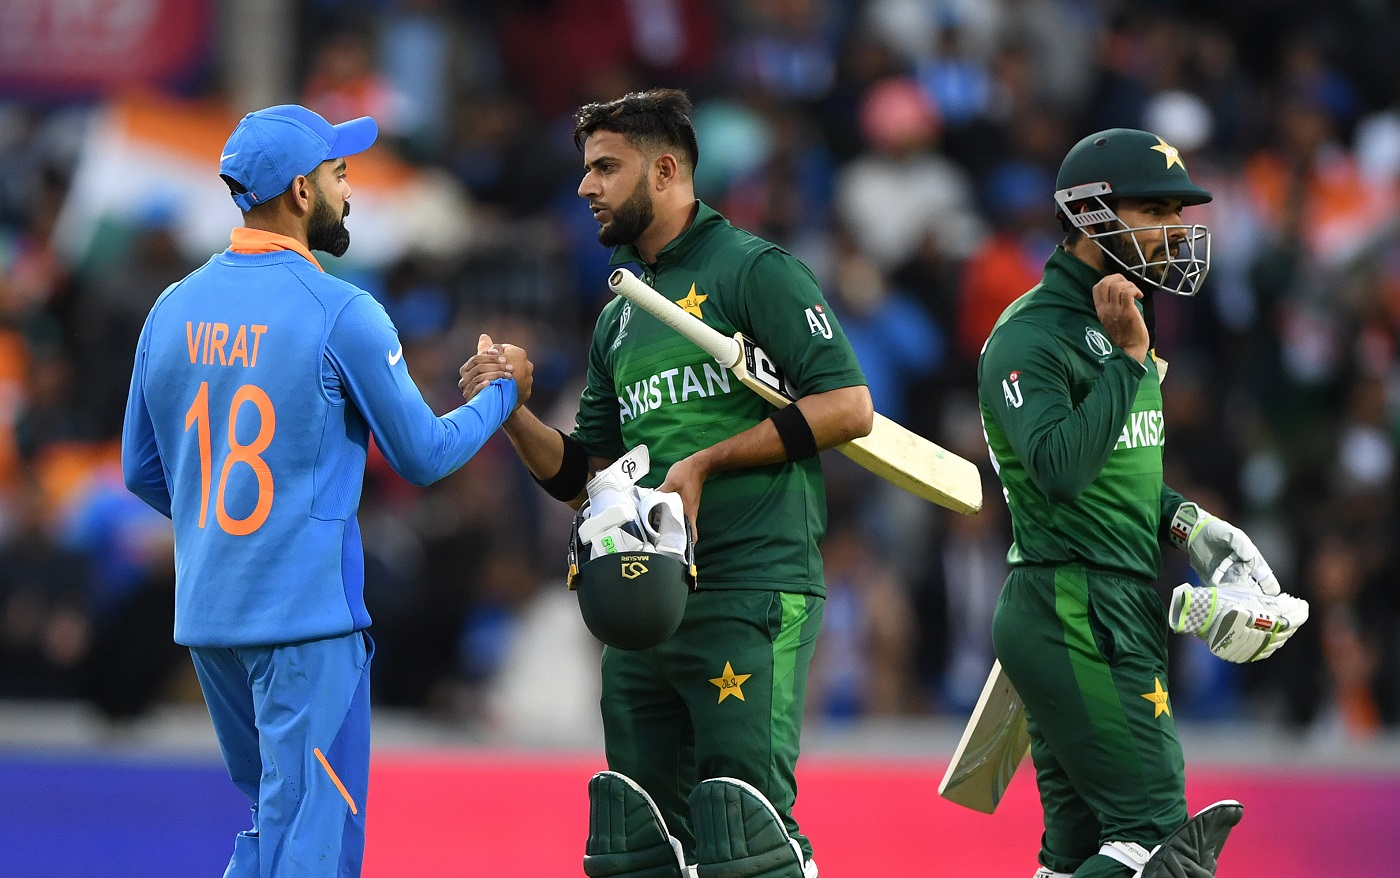 India vs Pakistan, World Cup 2019 - the match that changed everything for  Lancashire chief